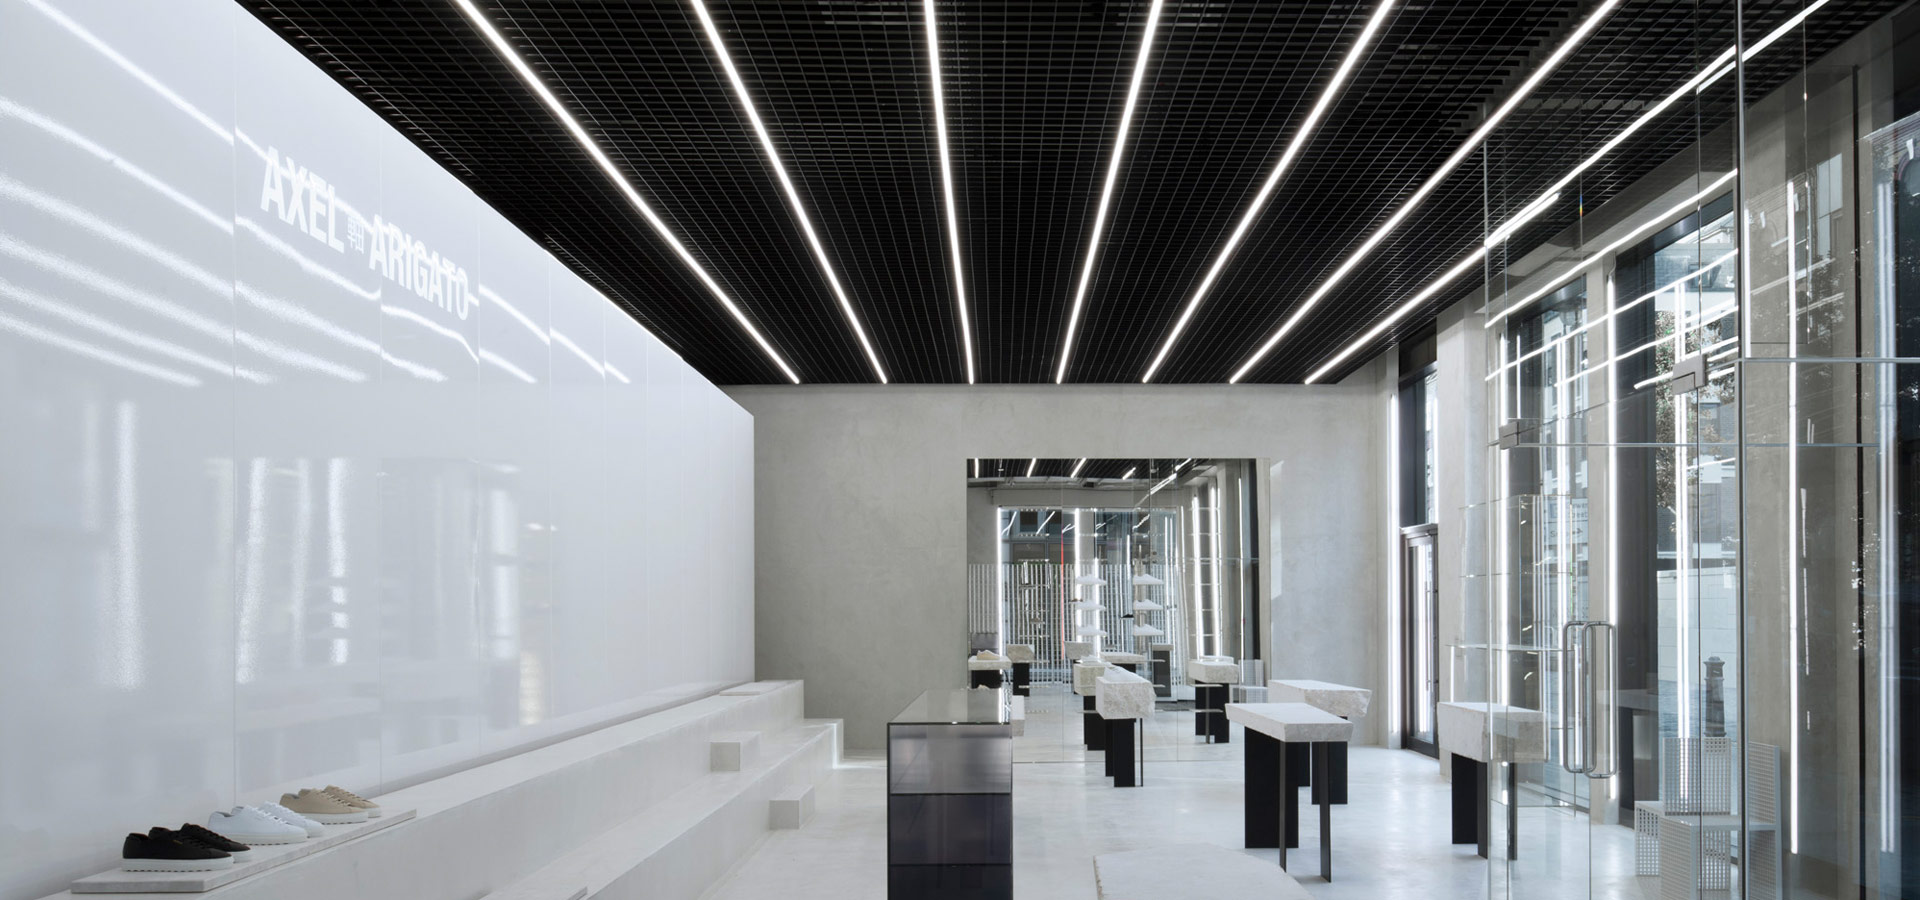 Luxsystem puristic Shop lighting Axel Arigato London Led light line